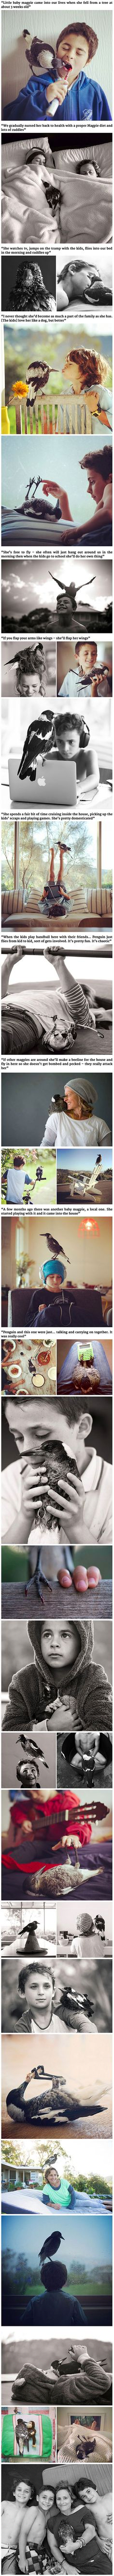 Unlikely Friendship Begins After Family Rescues Magpie, and These Photos Prove It